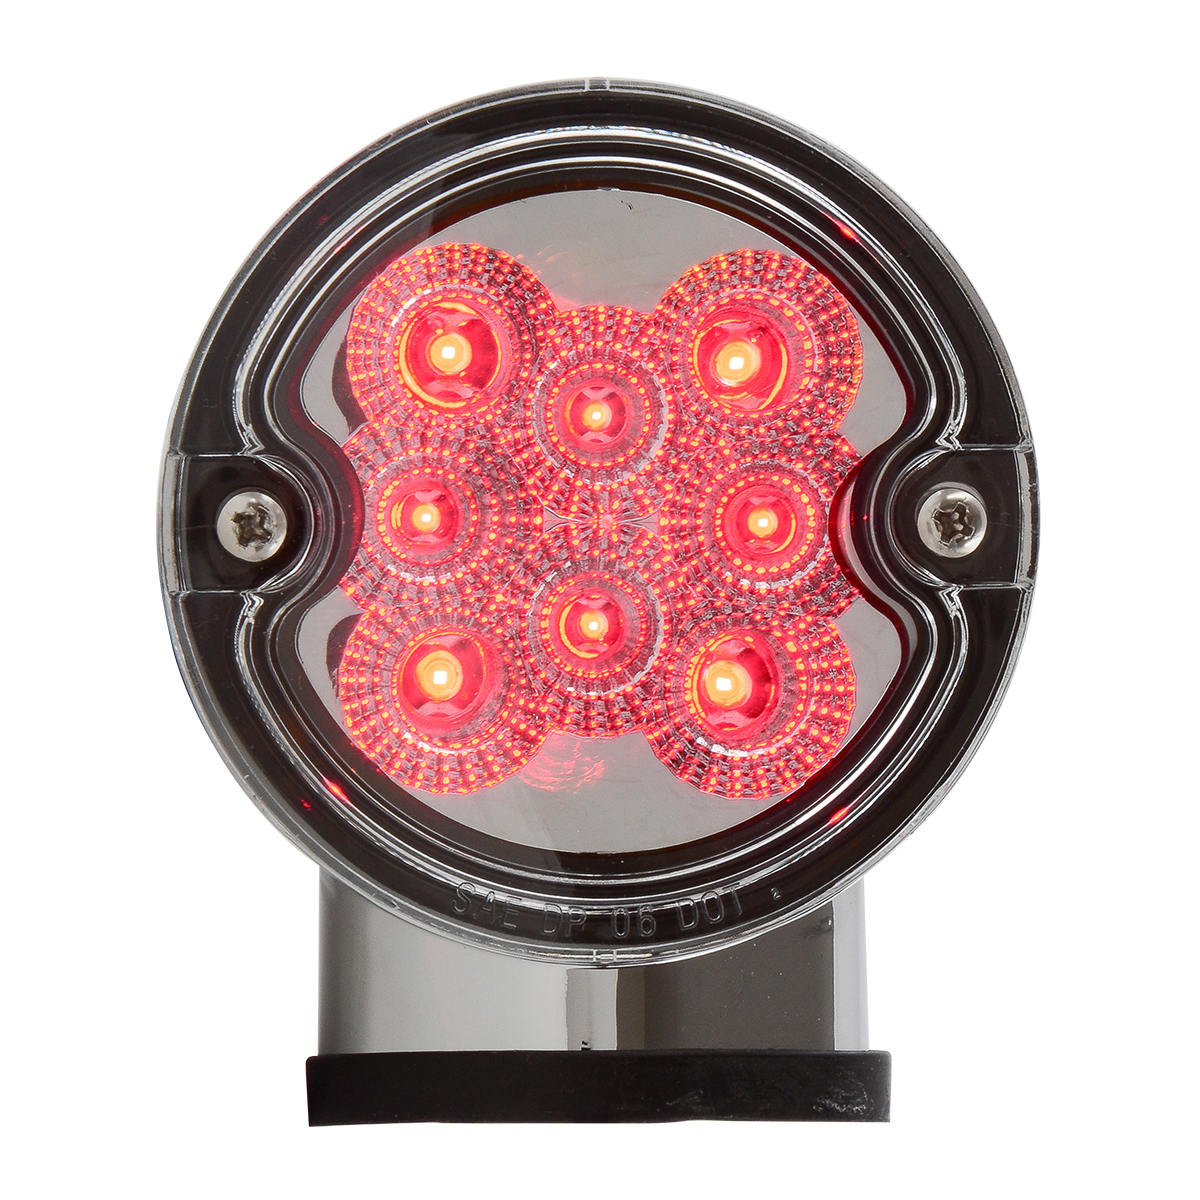 77253 Single Face Projected Spyder LED Pedestal Light